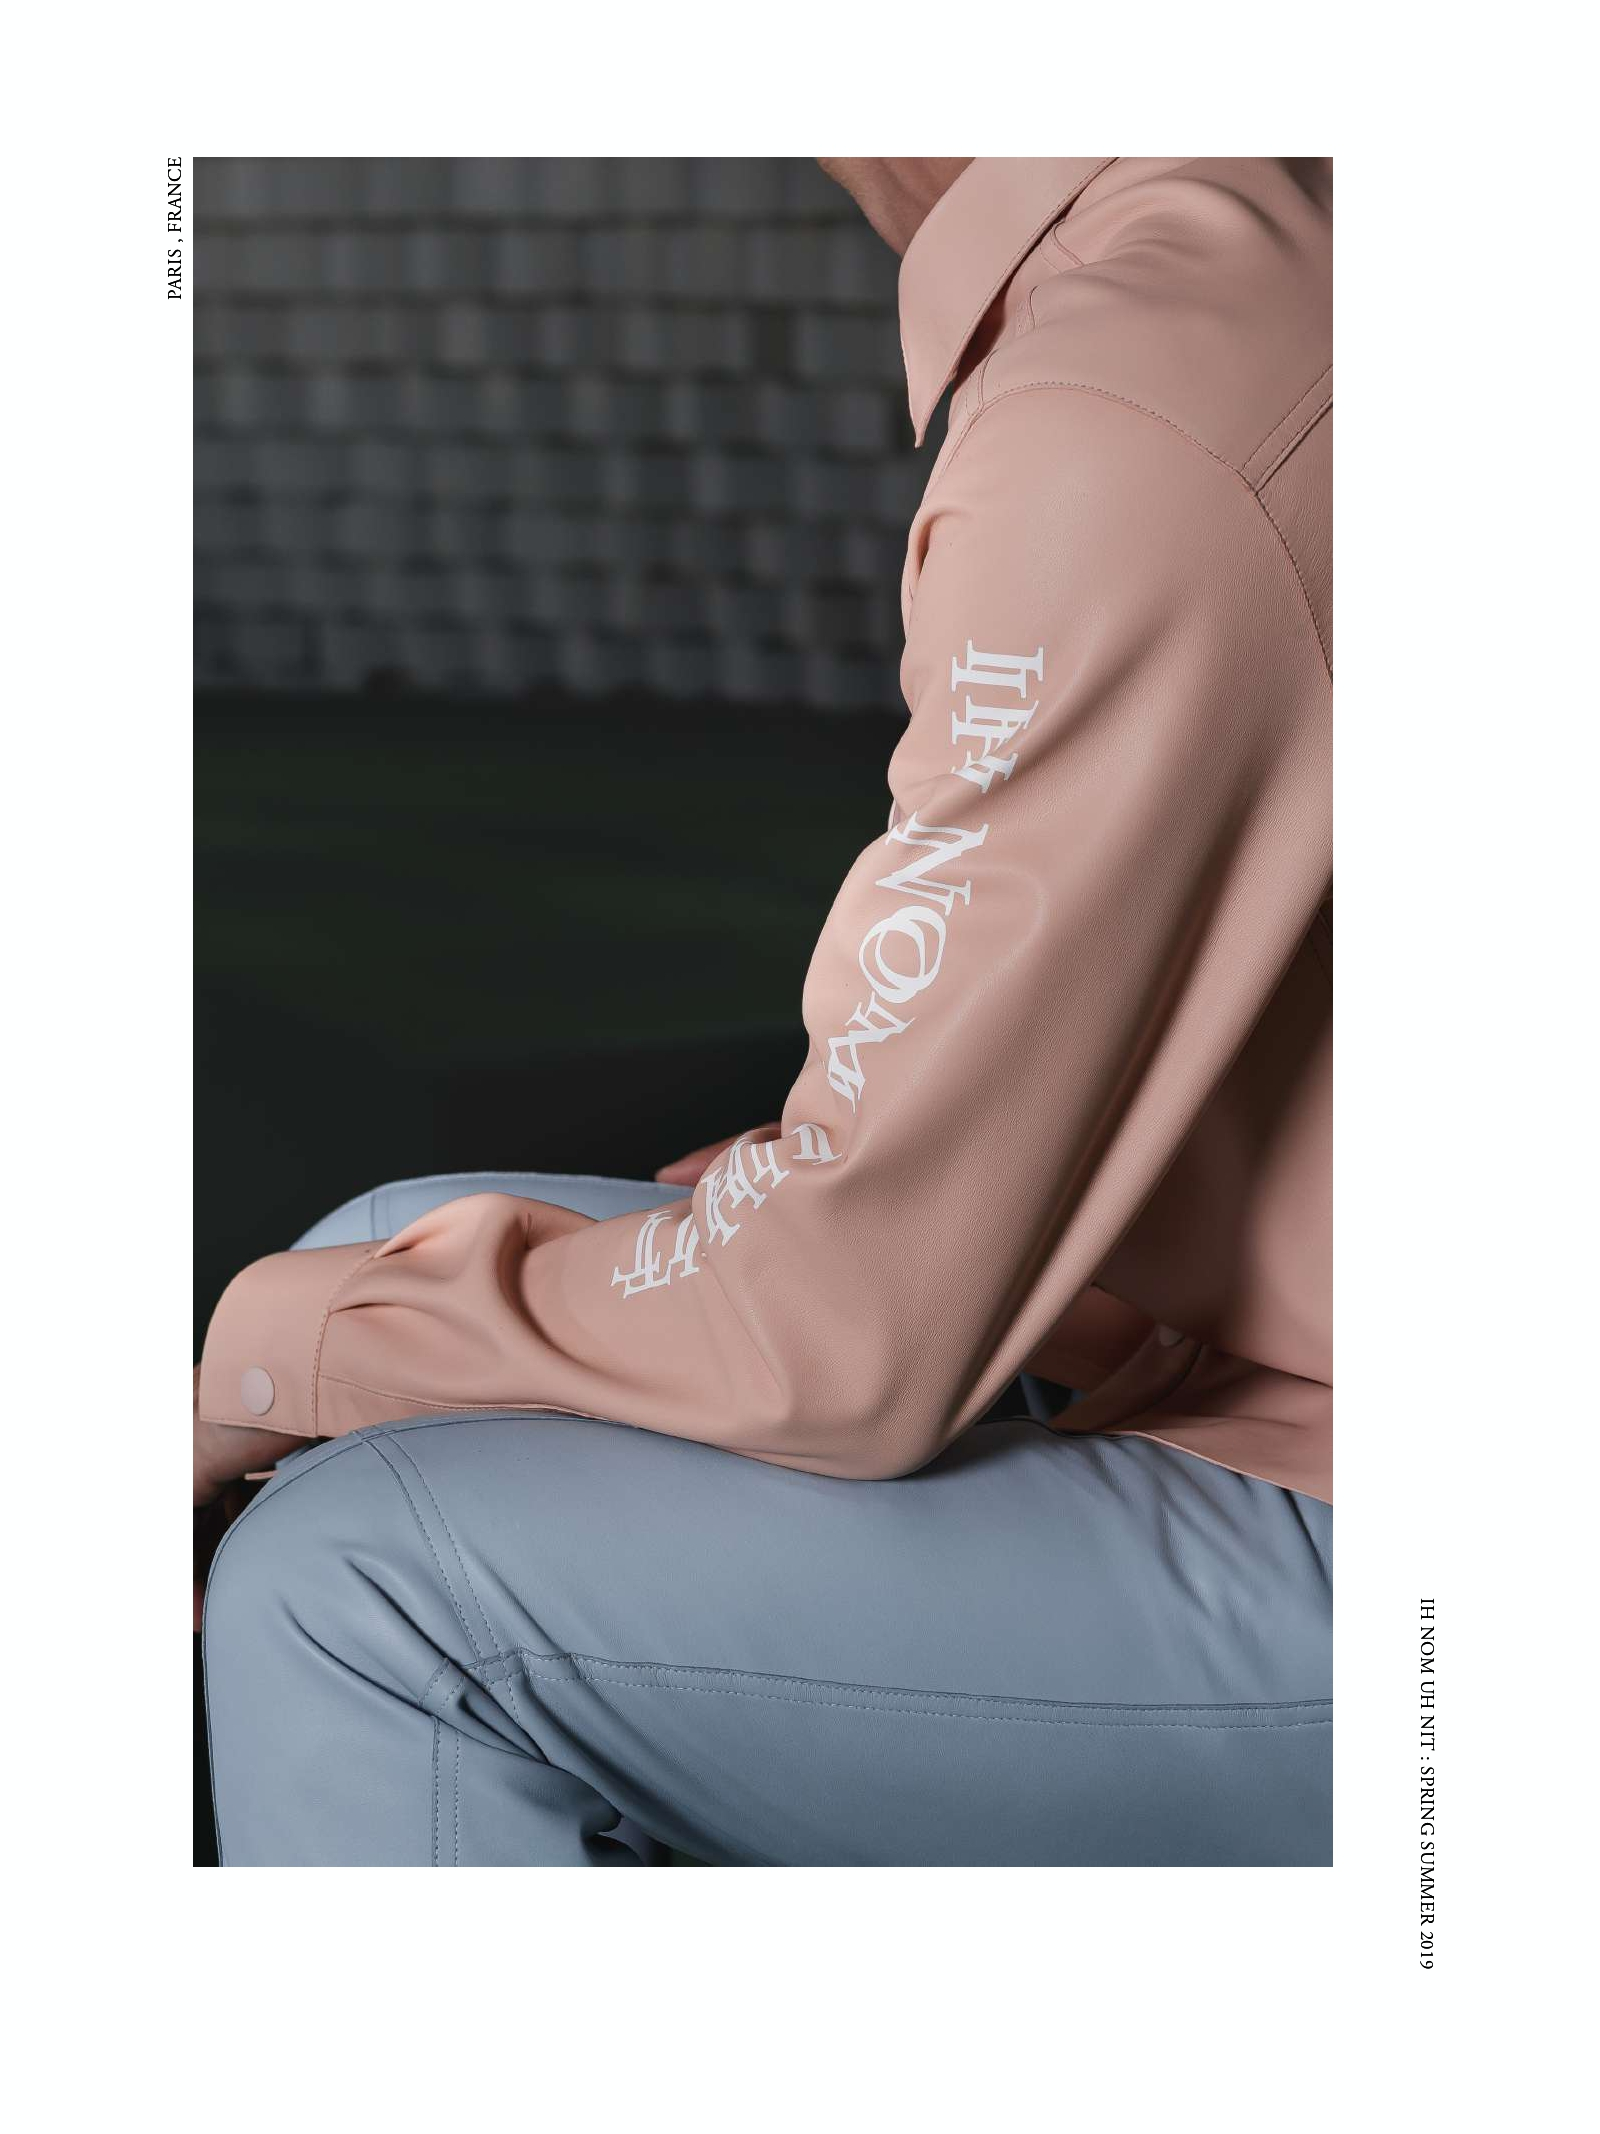 SS19 MAN LOOK BOOK EMAIL_pages-to-jpg-0005.jpg